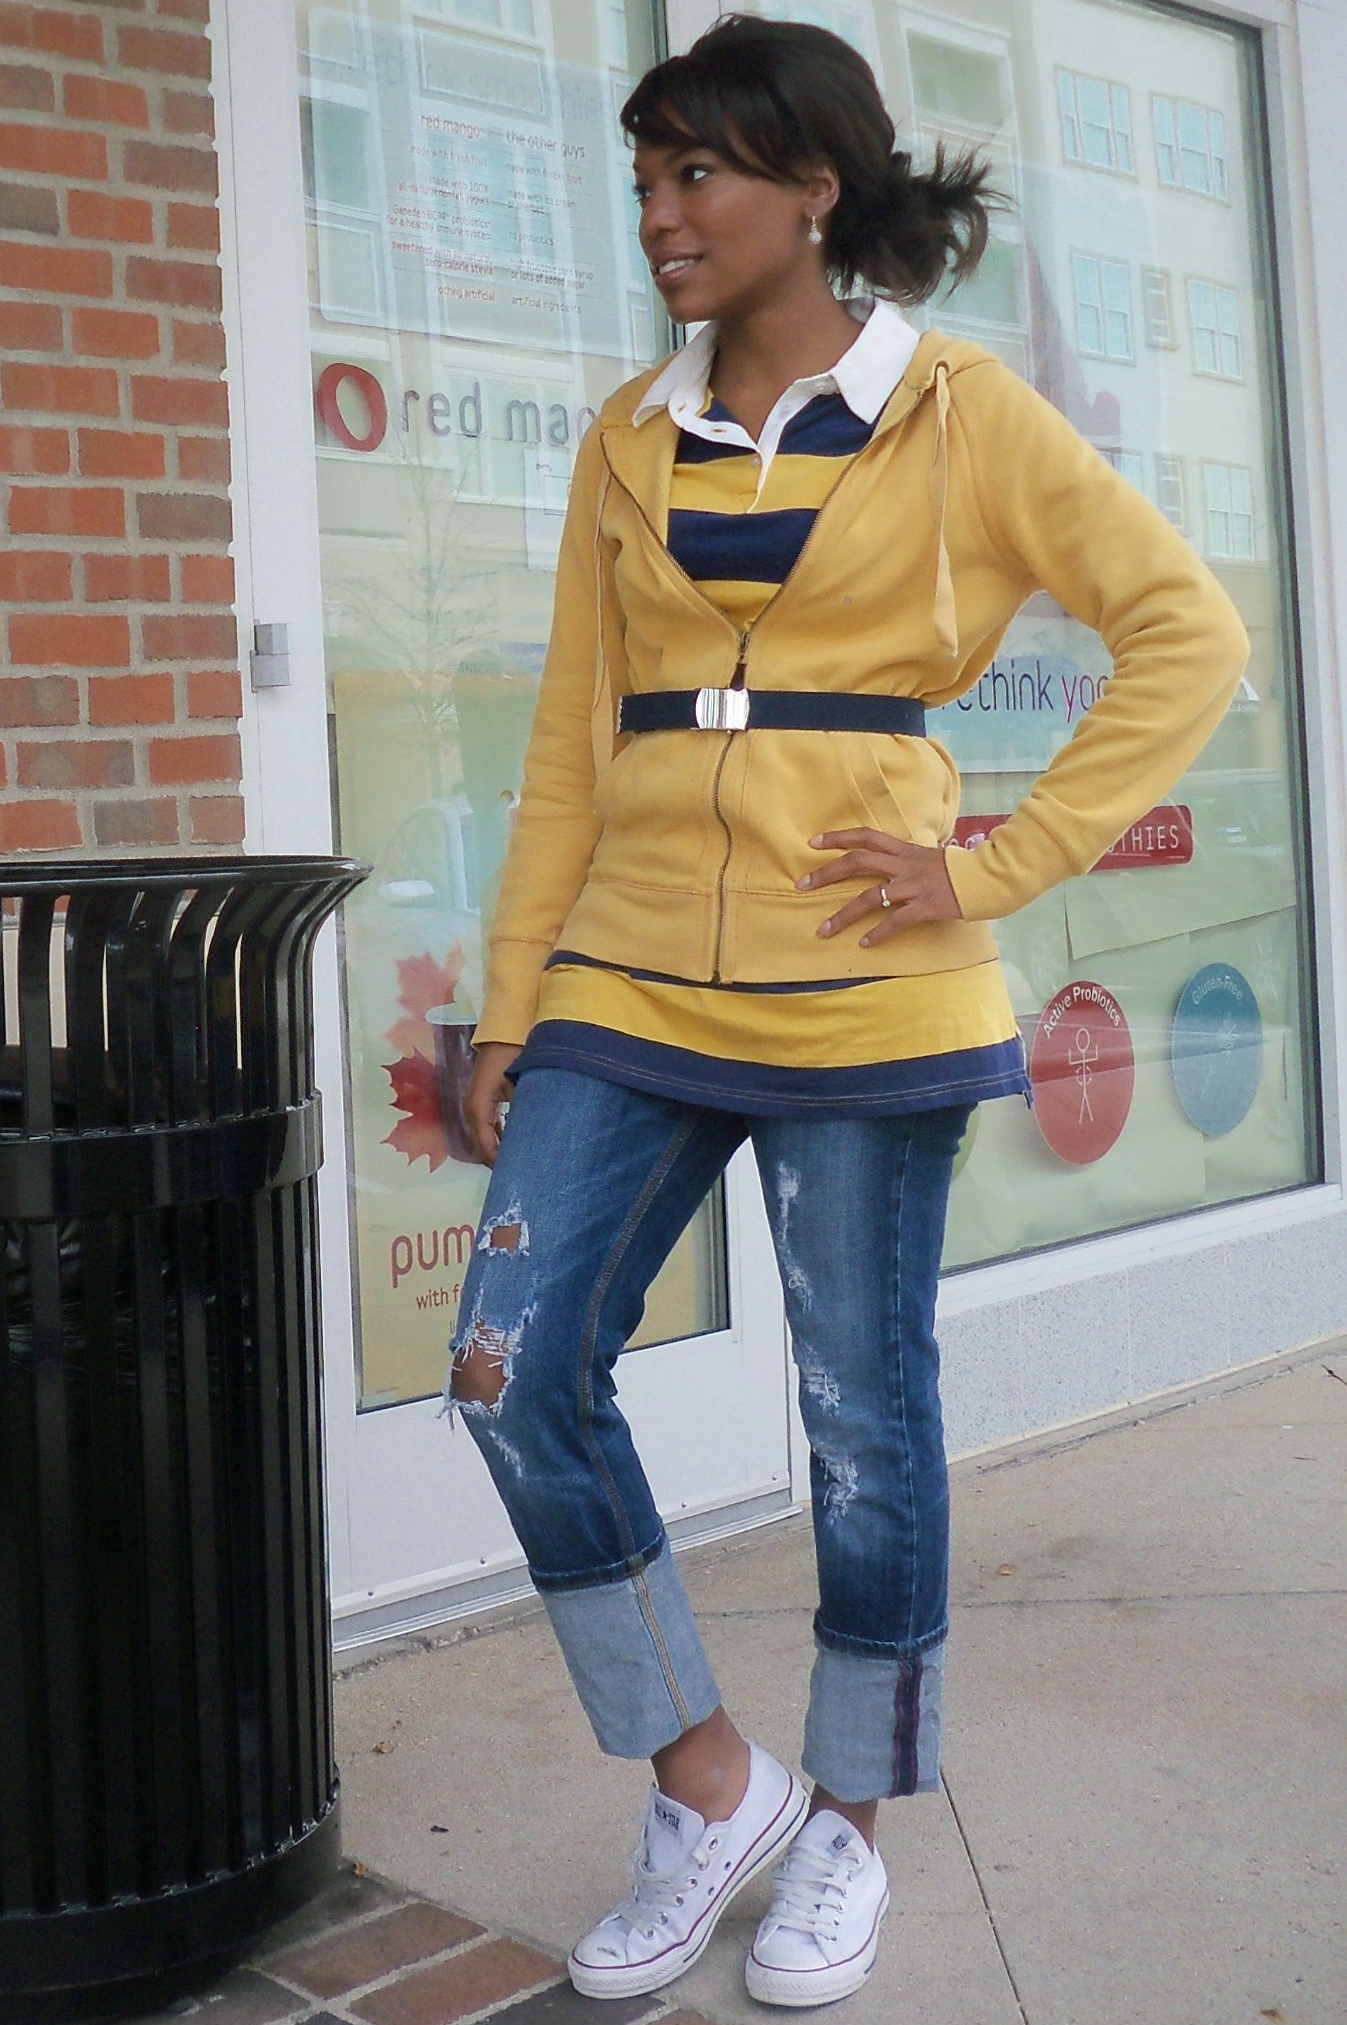 Preppy Casual Converse Sneaker Outfit